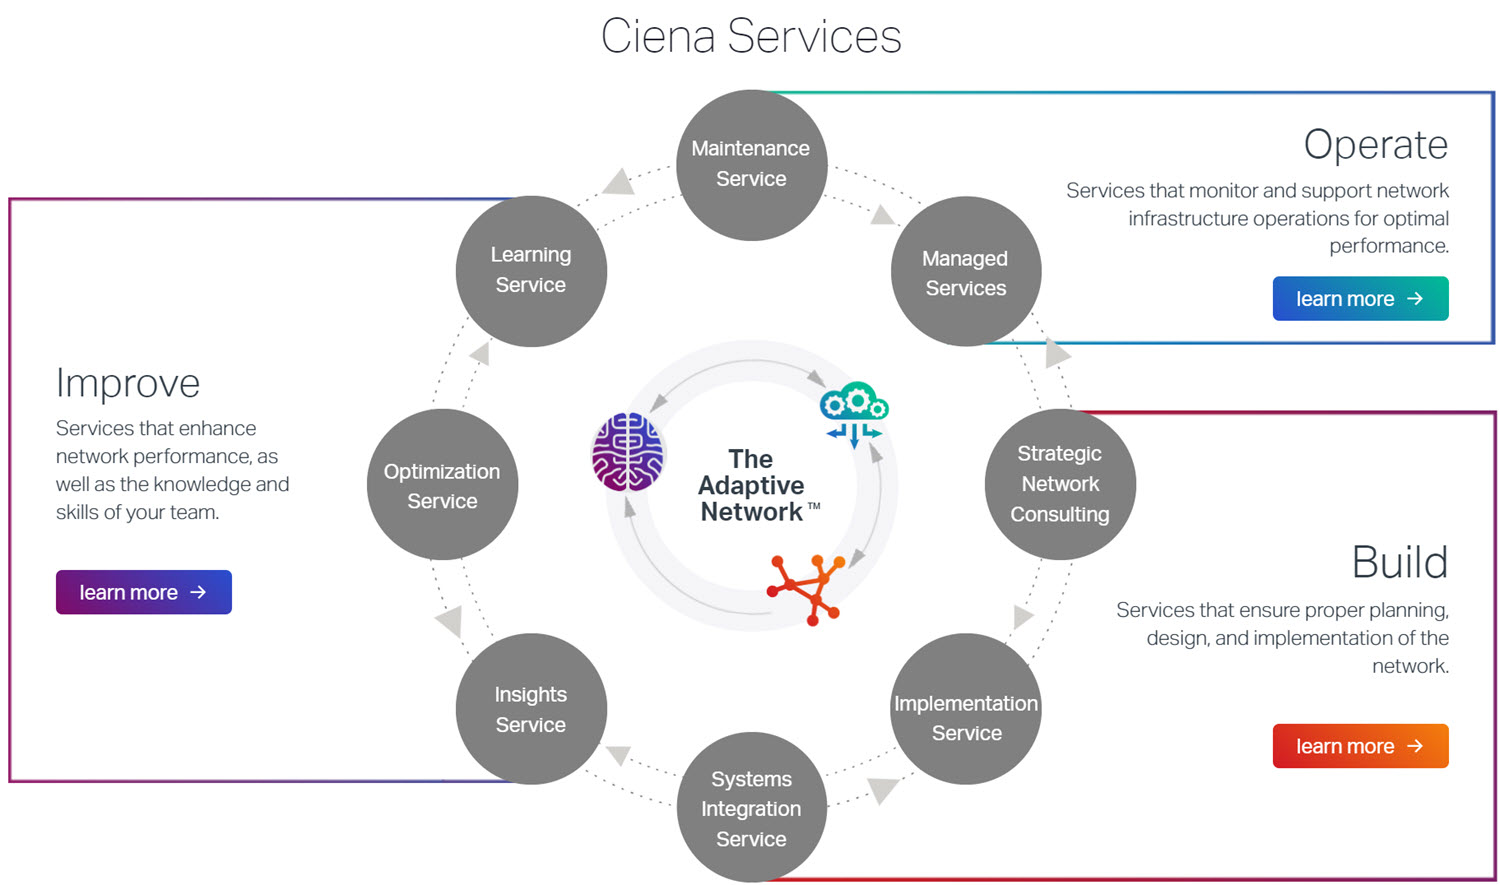 Ciena Services diagram